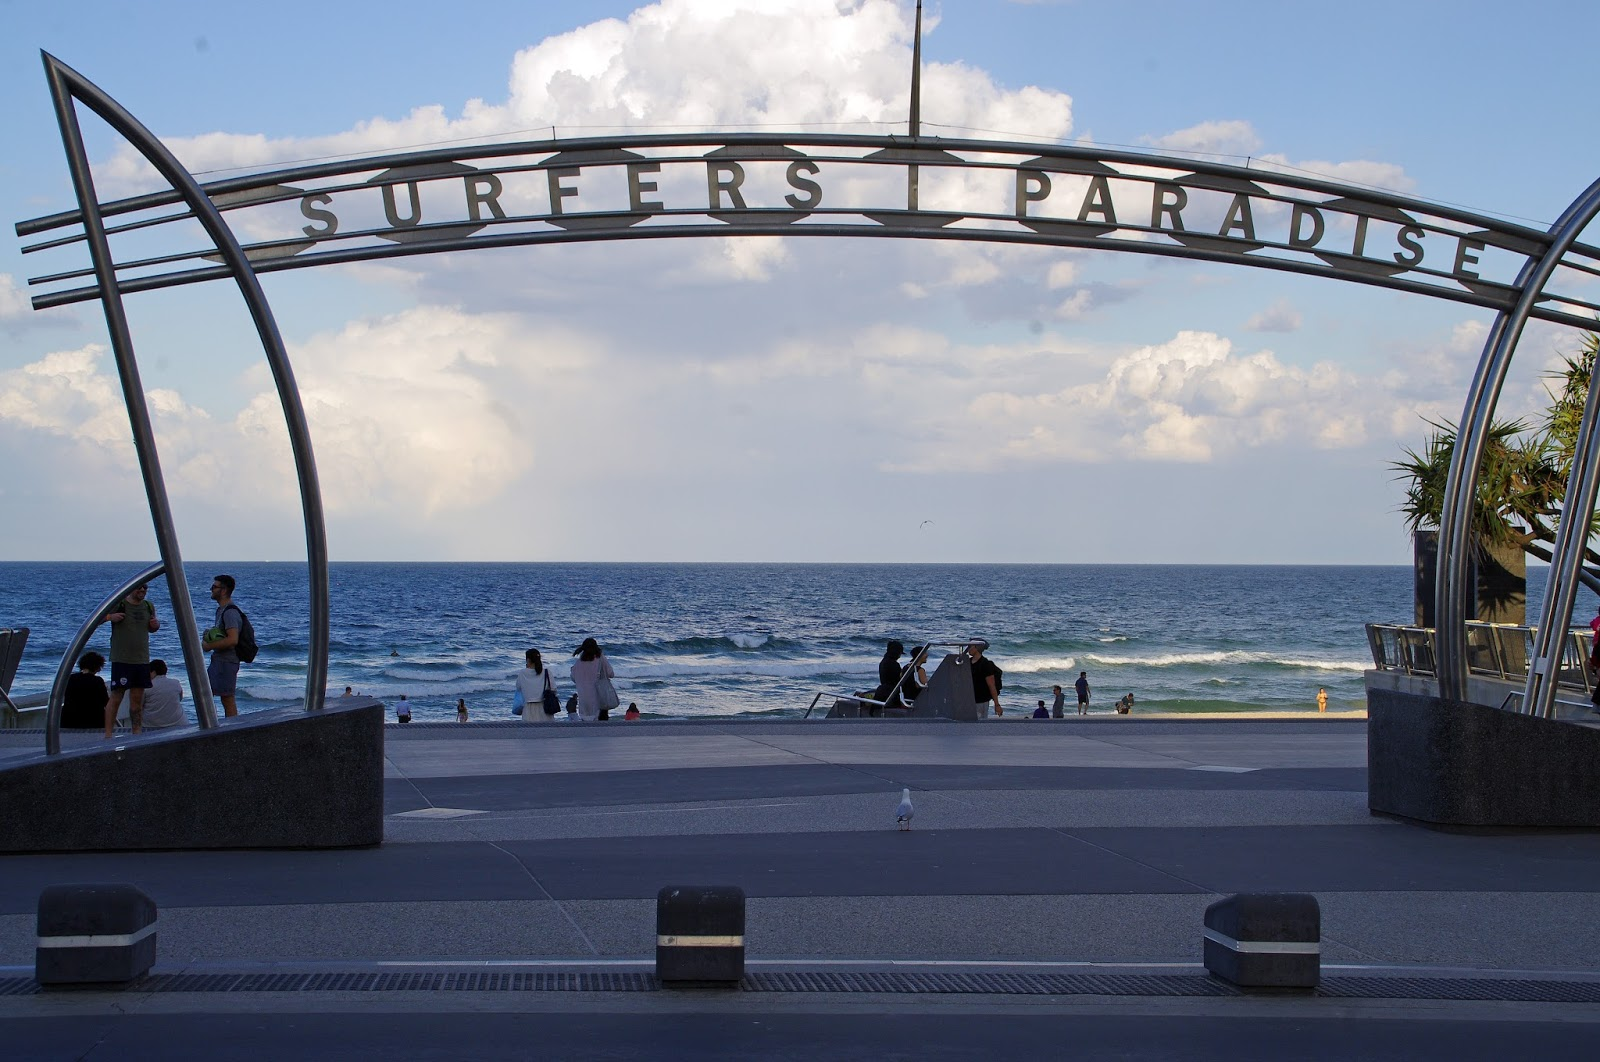 picture of the sea through the surfers paradise sign